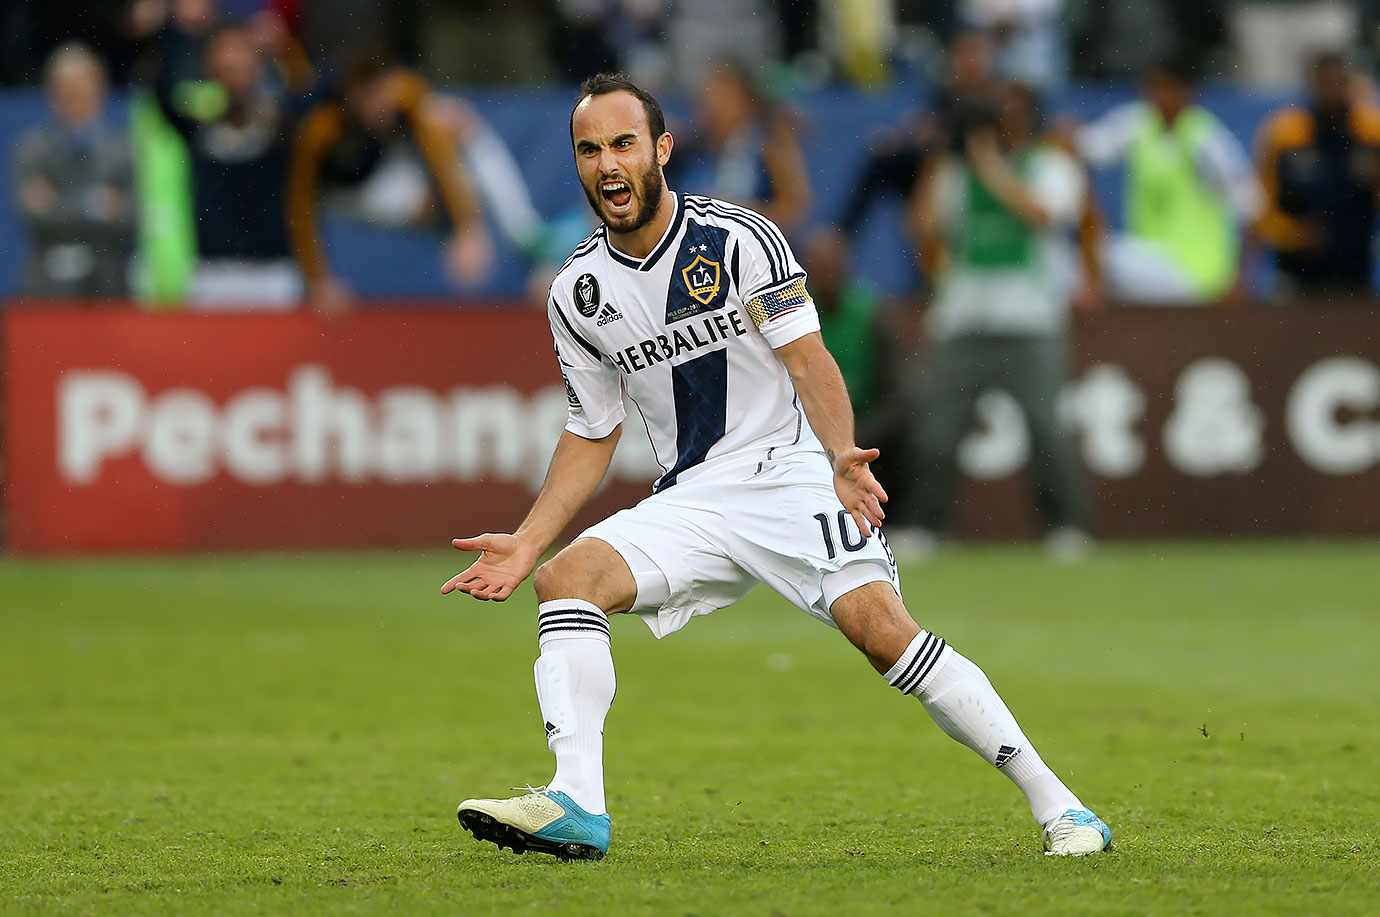 Landon Donovan reacts after scoring on a penalty kick in the second half against the Houston Dynamo in the 2012 MLS Cup. The Los Angeles Galaxy won 3-1.